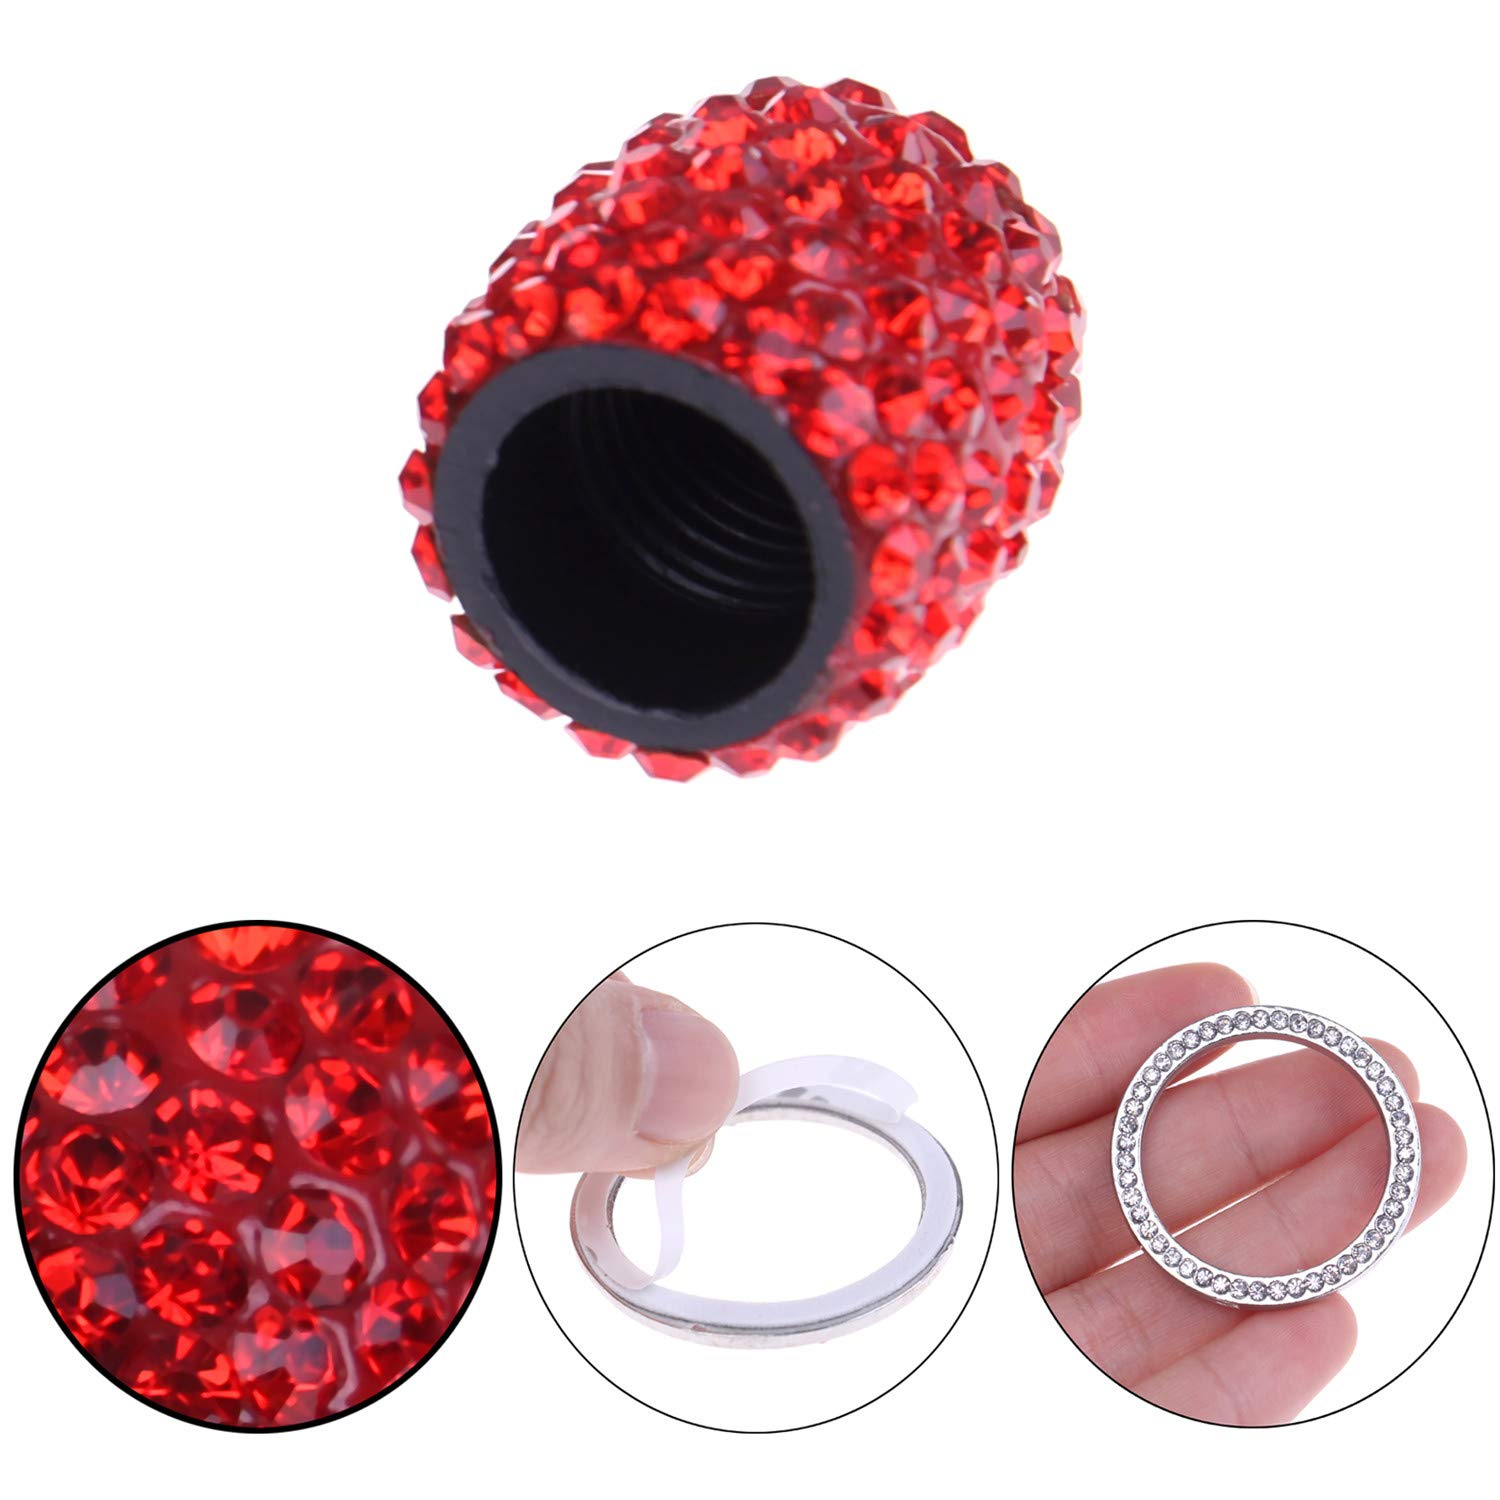 Valve Stem Caps,4Pcs Crystal Rhinestone Universal Tire Valve Dust Caps Bling Car Accessories with 2 Ring Emblem Sticker for Auto Start Engine Ignition Button Car Decor Engine Start Stop Accessories